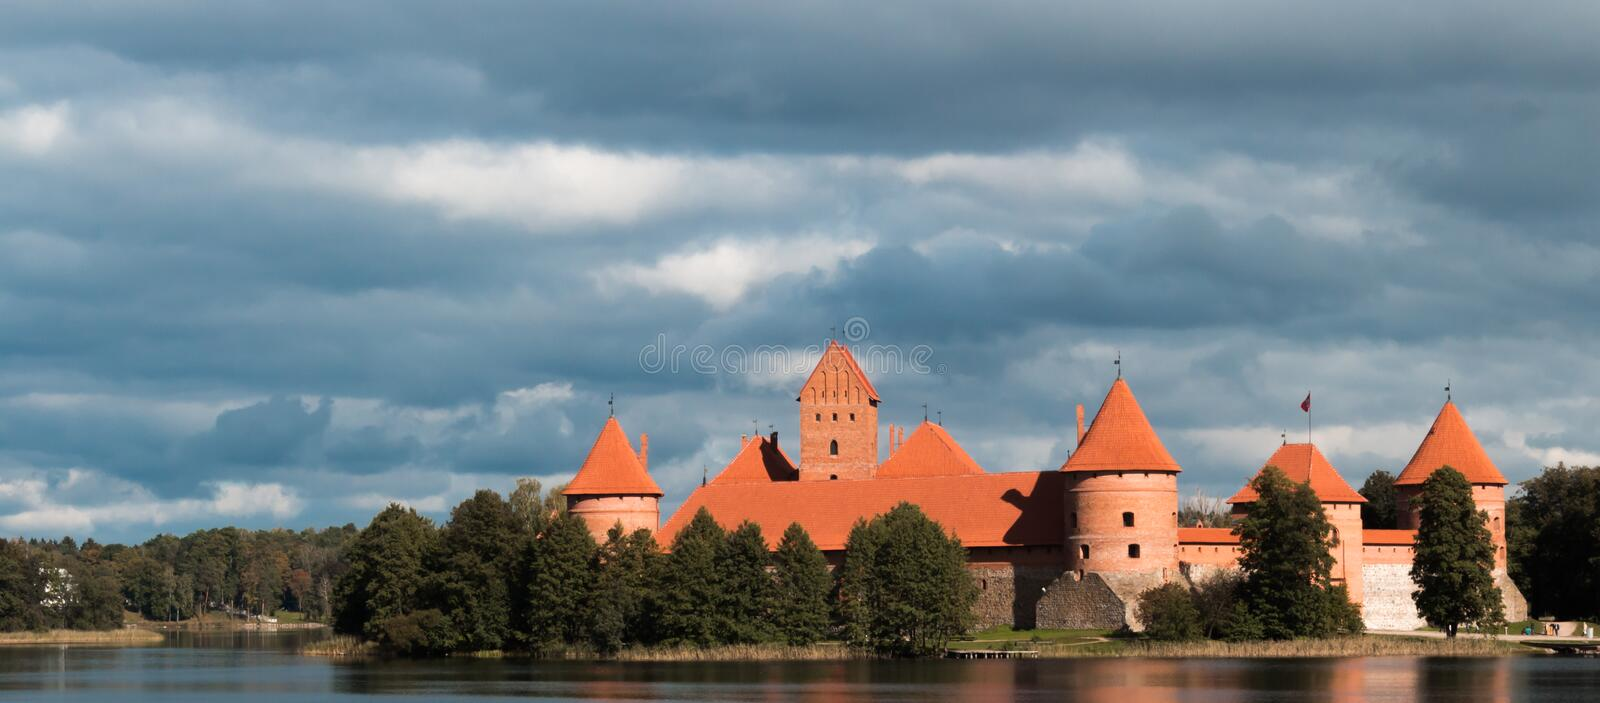 Island castle in Trakai, Lithuania. With a cloudy sky in the background royalty free stock photos